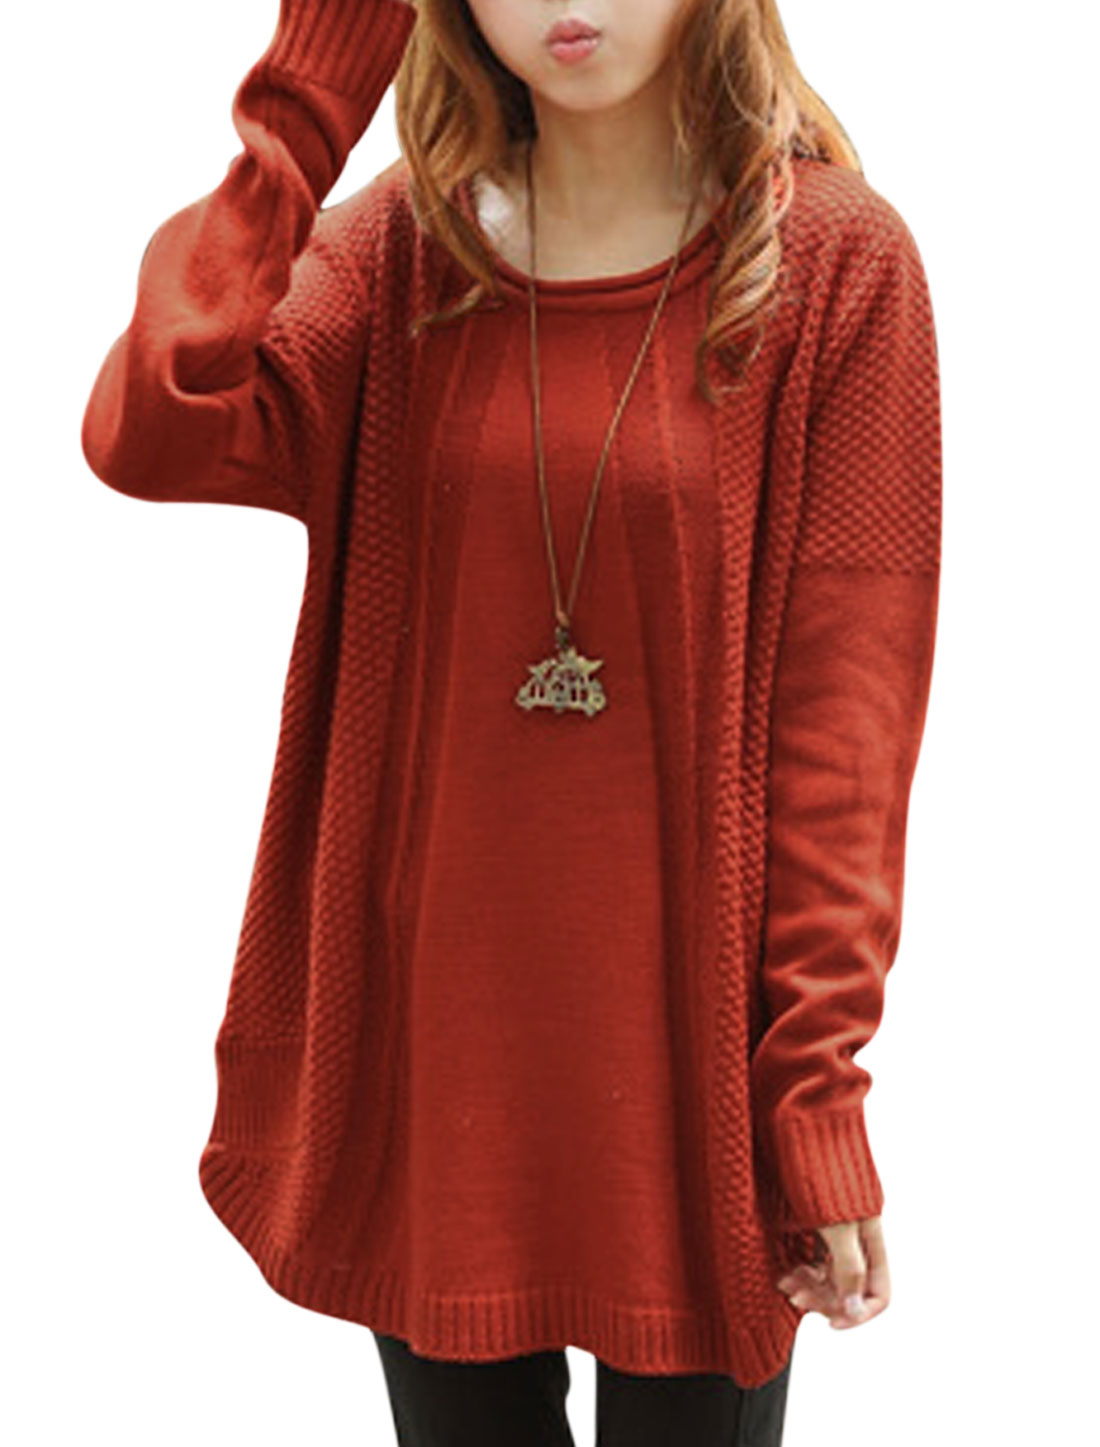 Lady Round Neck Long Batwing Sleeve Loose Knitwear Sweater Rust XS